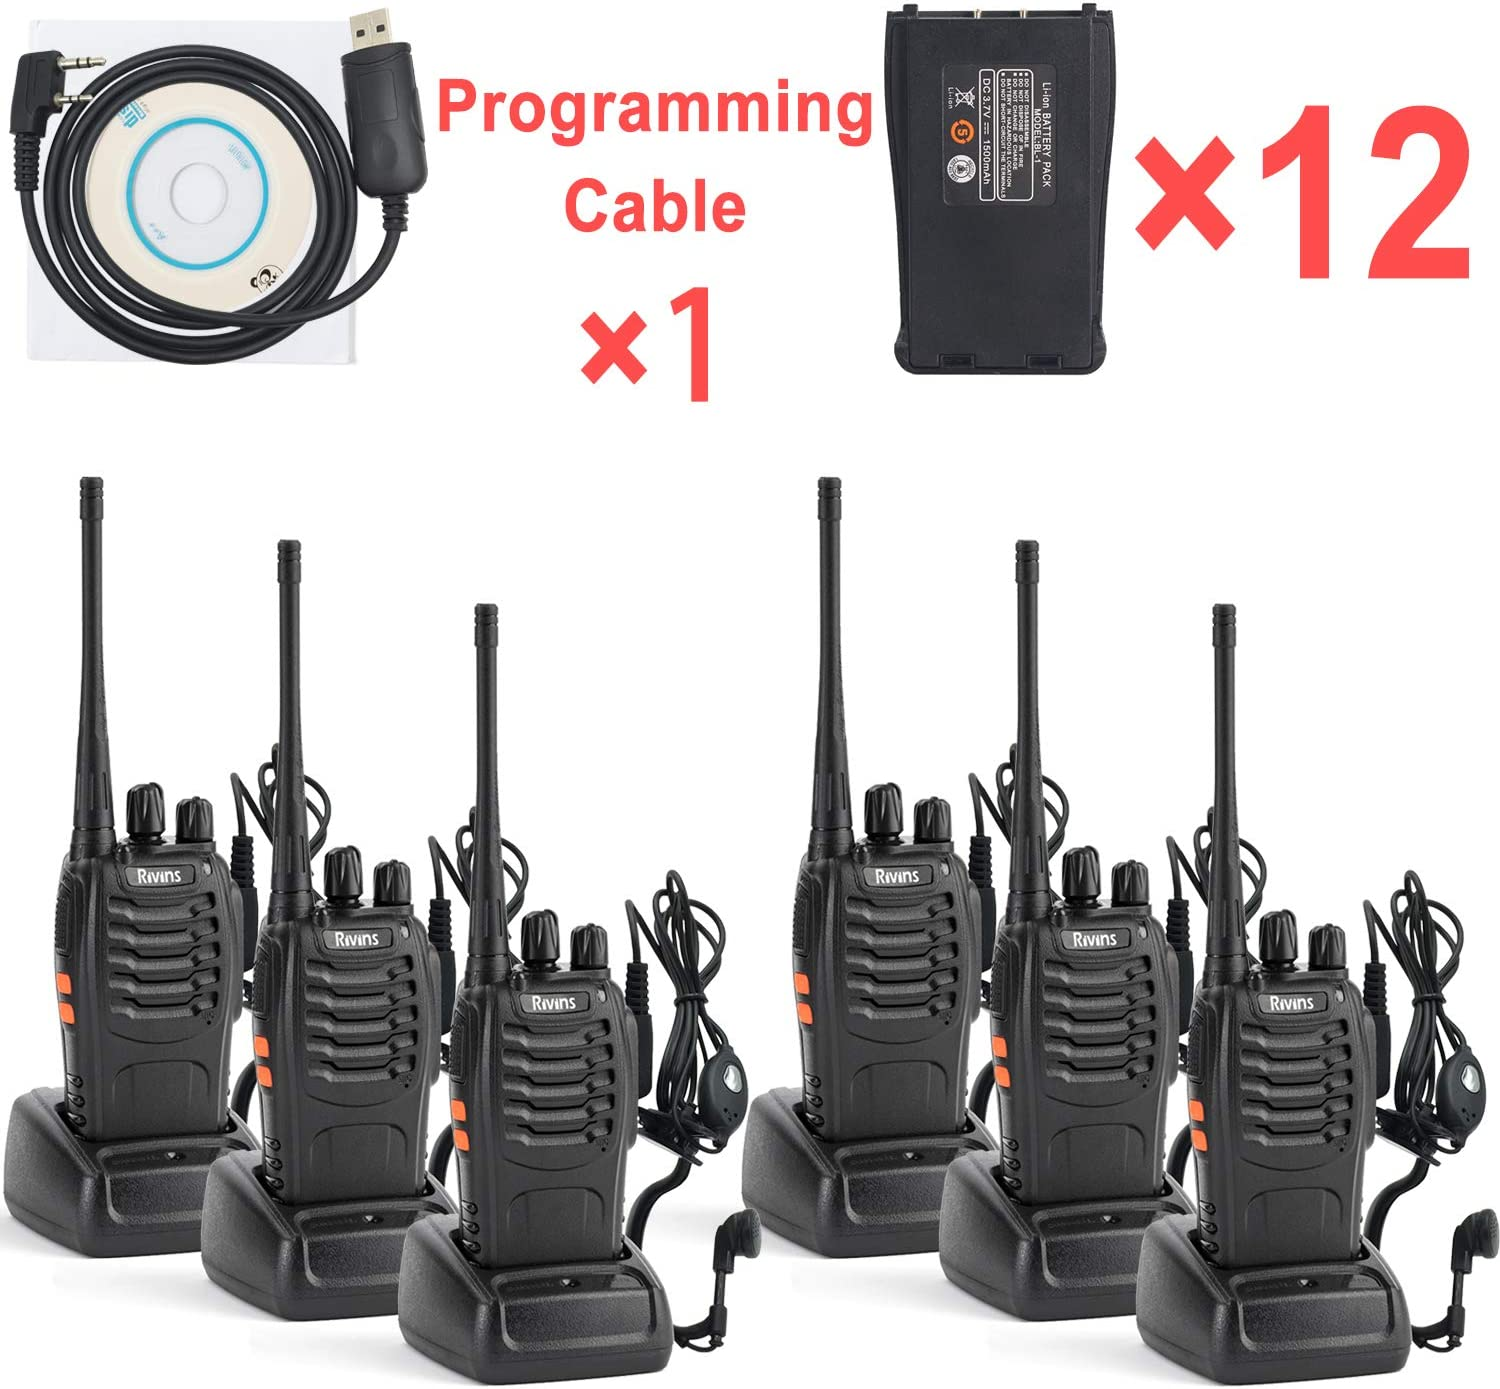 Rechargeable Walkie Talkies for Adults Long Range 6 Pack 2-Way Radio Up to 5 Miles Range in Open Field 16 Channel FRS/GMRS Walkie Talkies with Programming Cable and 12 Li-ion Batteries